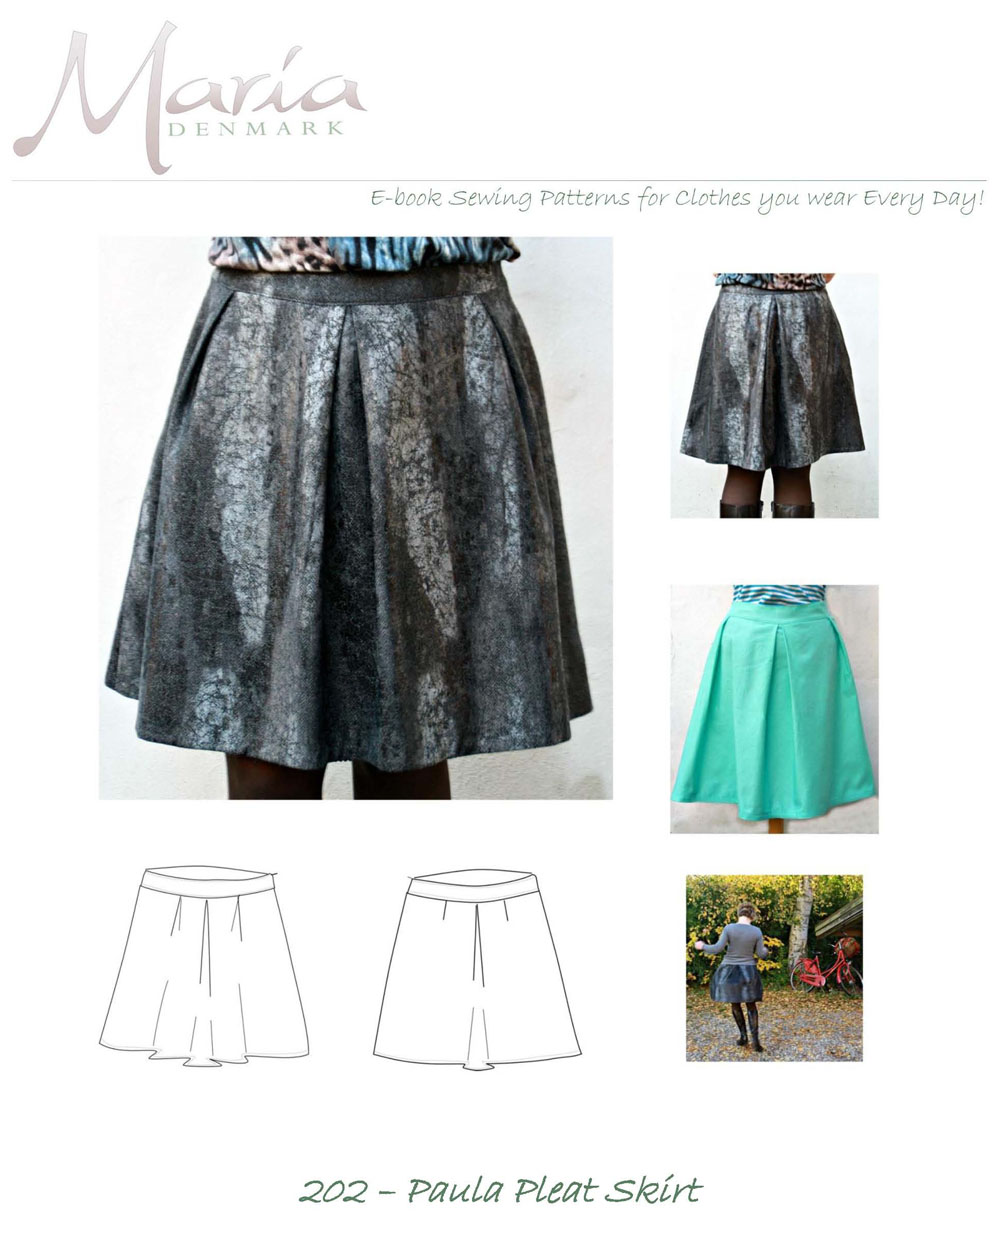 MariaDenmark Paula Pleat Skirt Downloadable Pattern 202